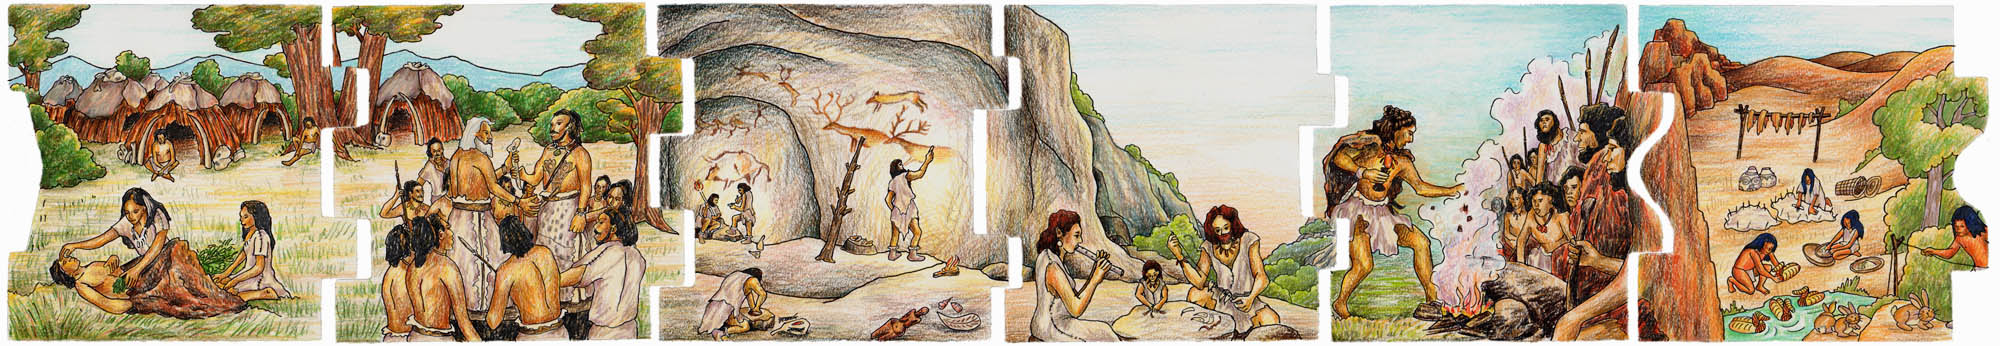 from 22.000 years ago until the Middle Ages7-12